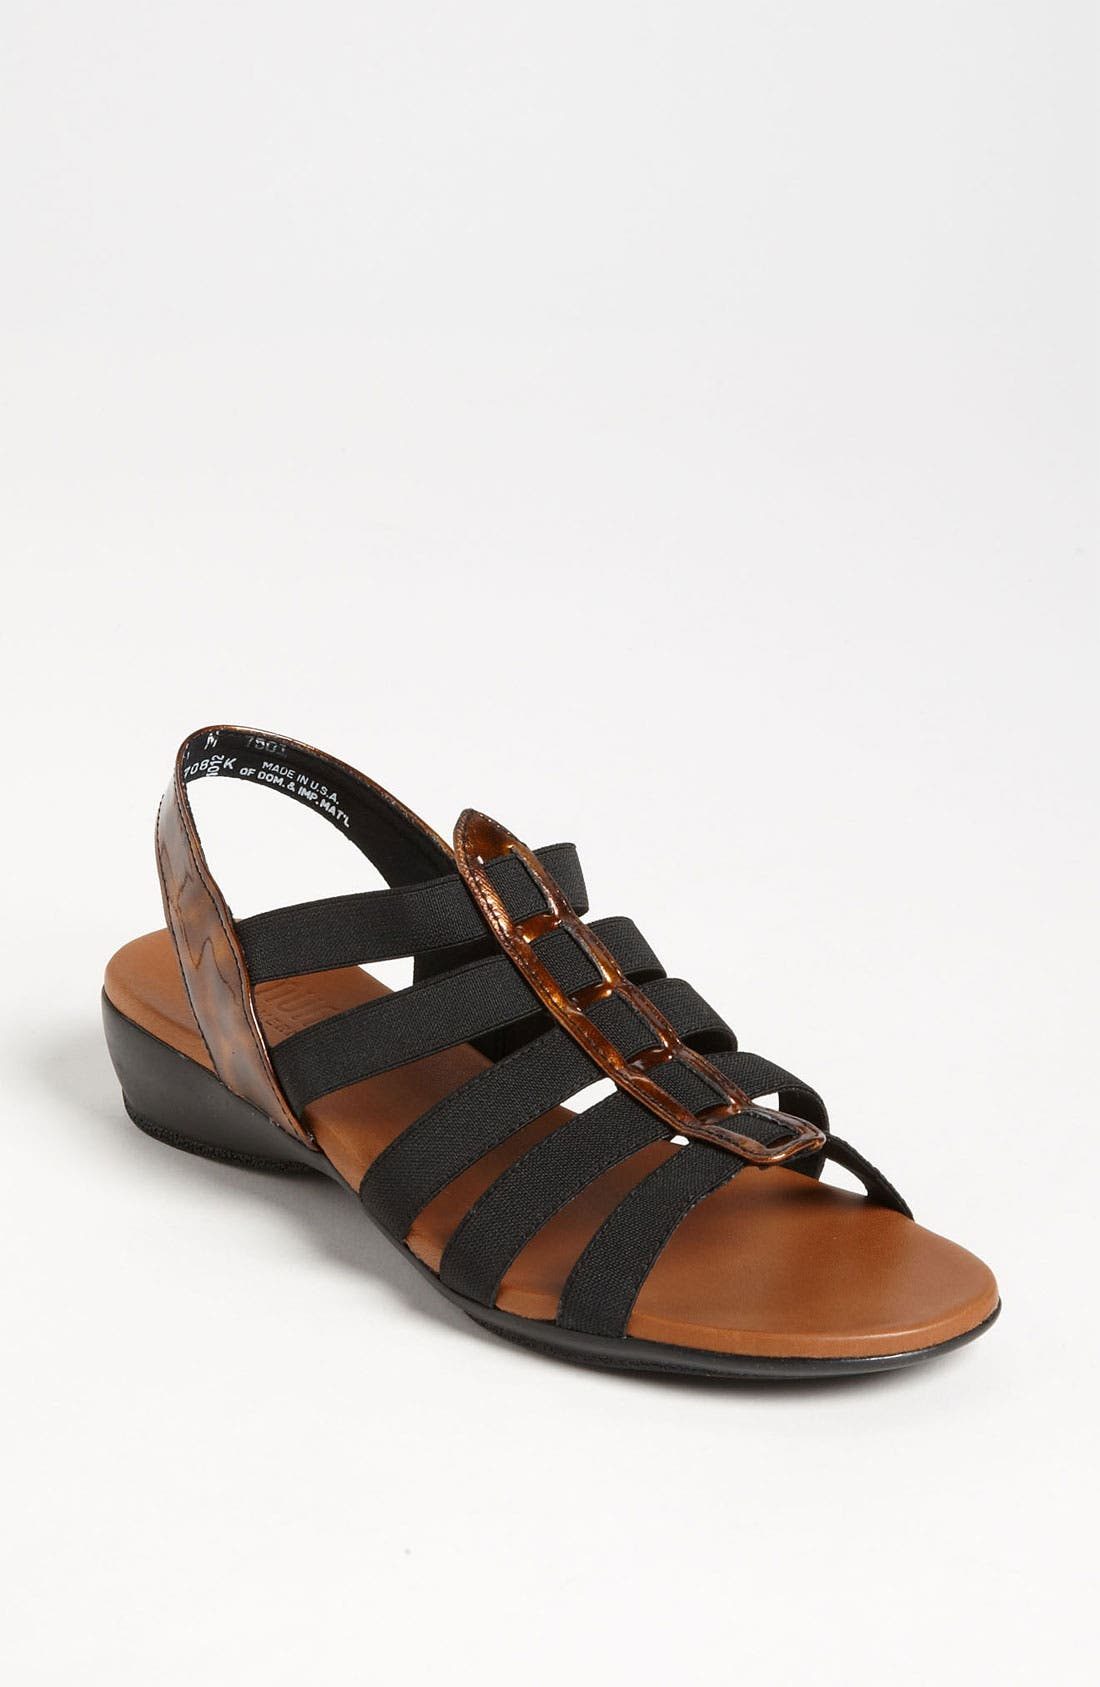 Alternate Image 1 Selected - Munro 'Darian' Sandal